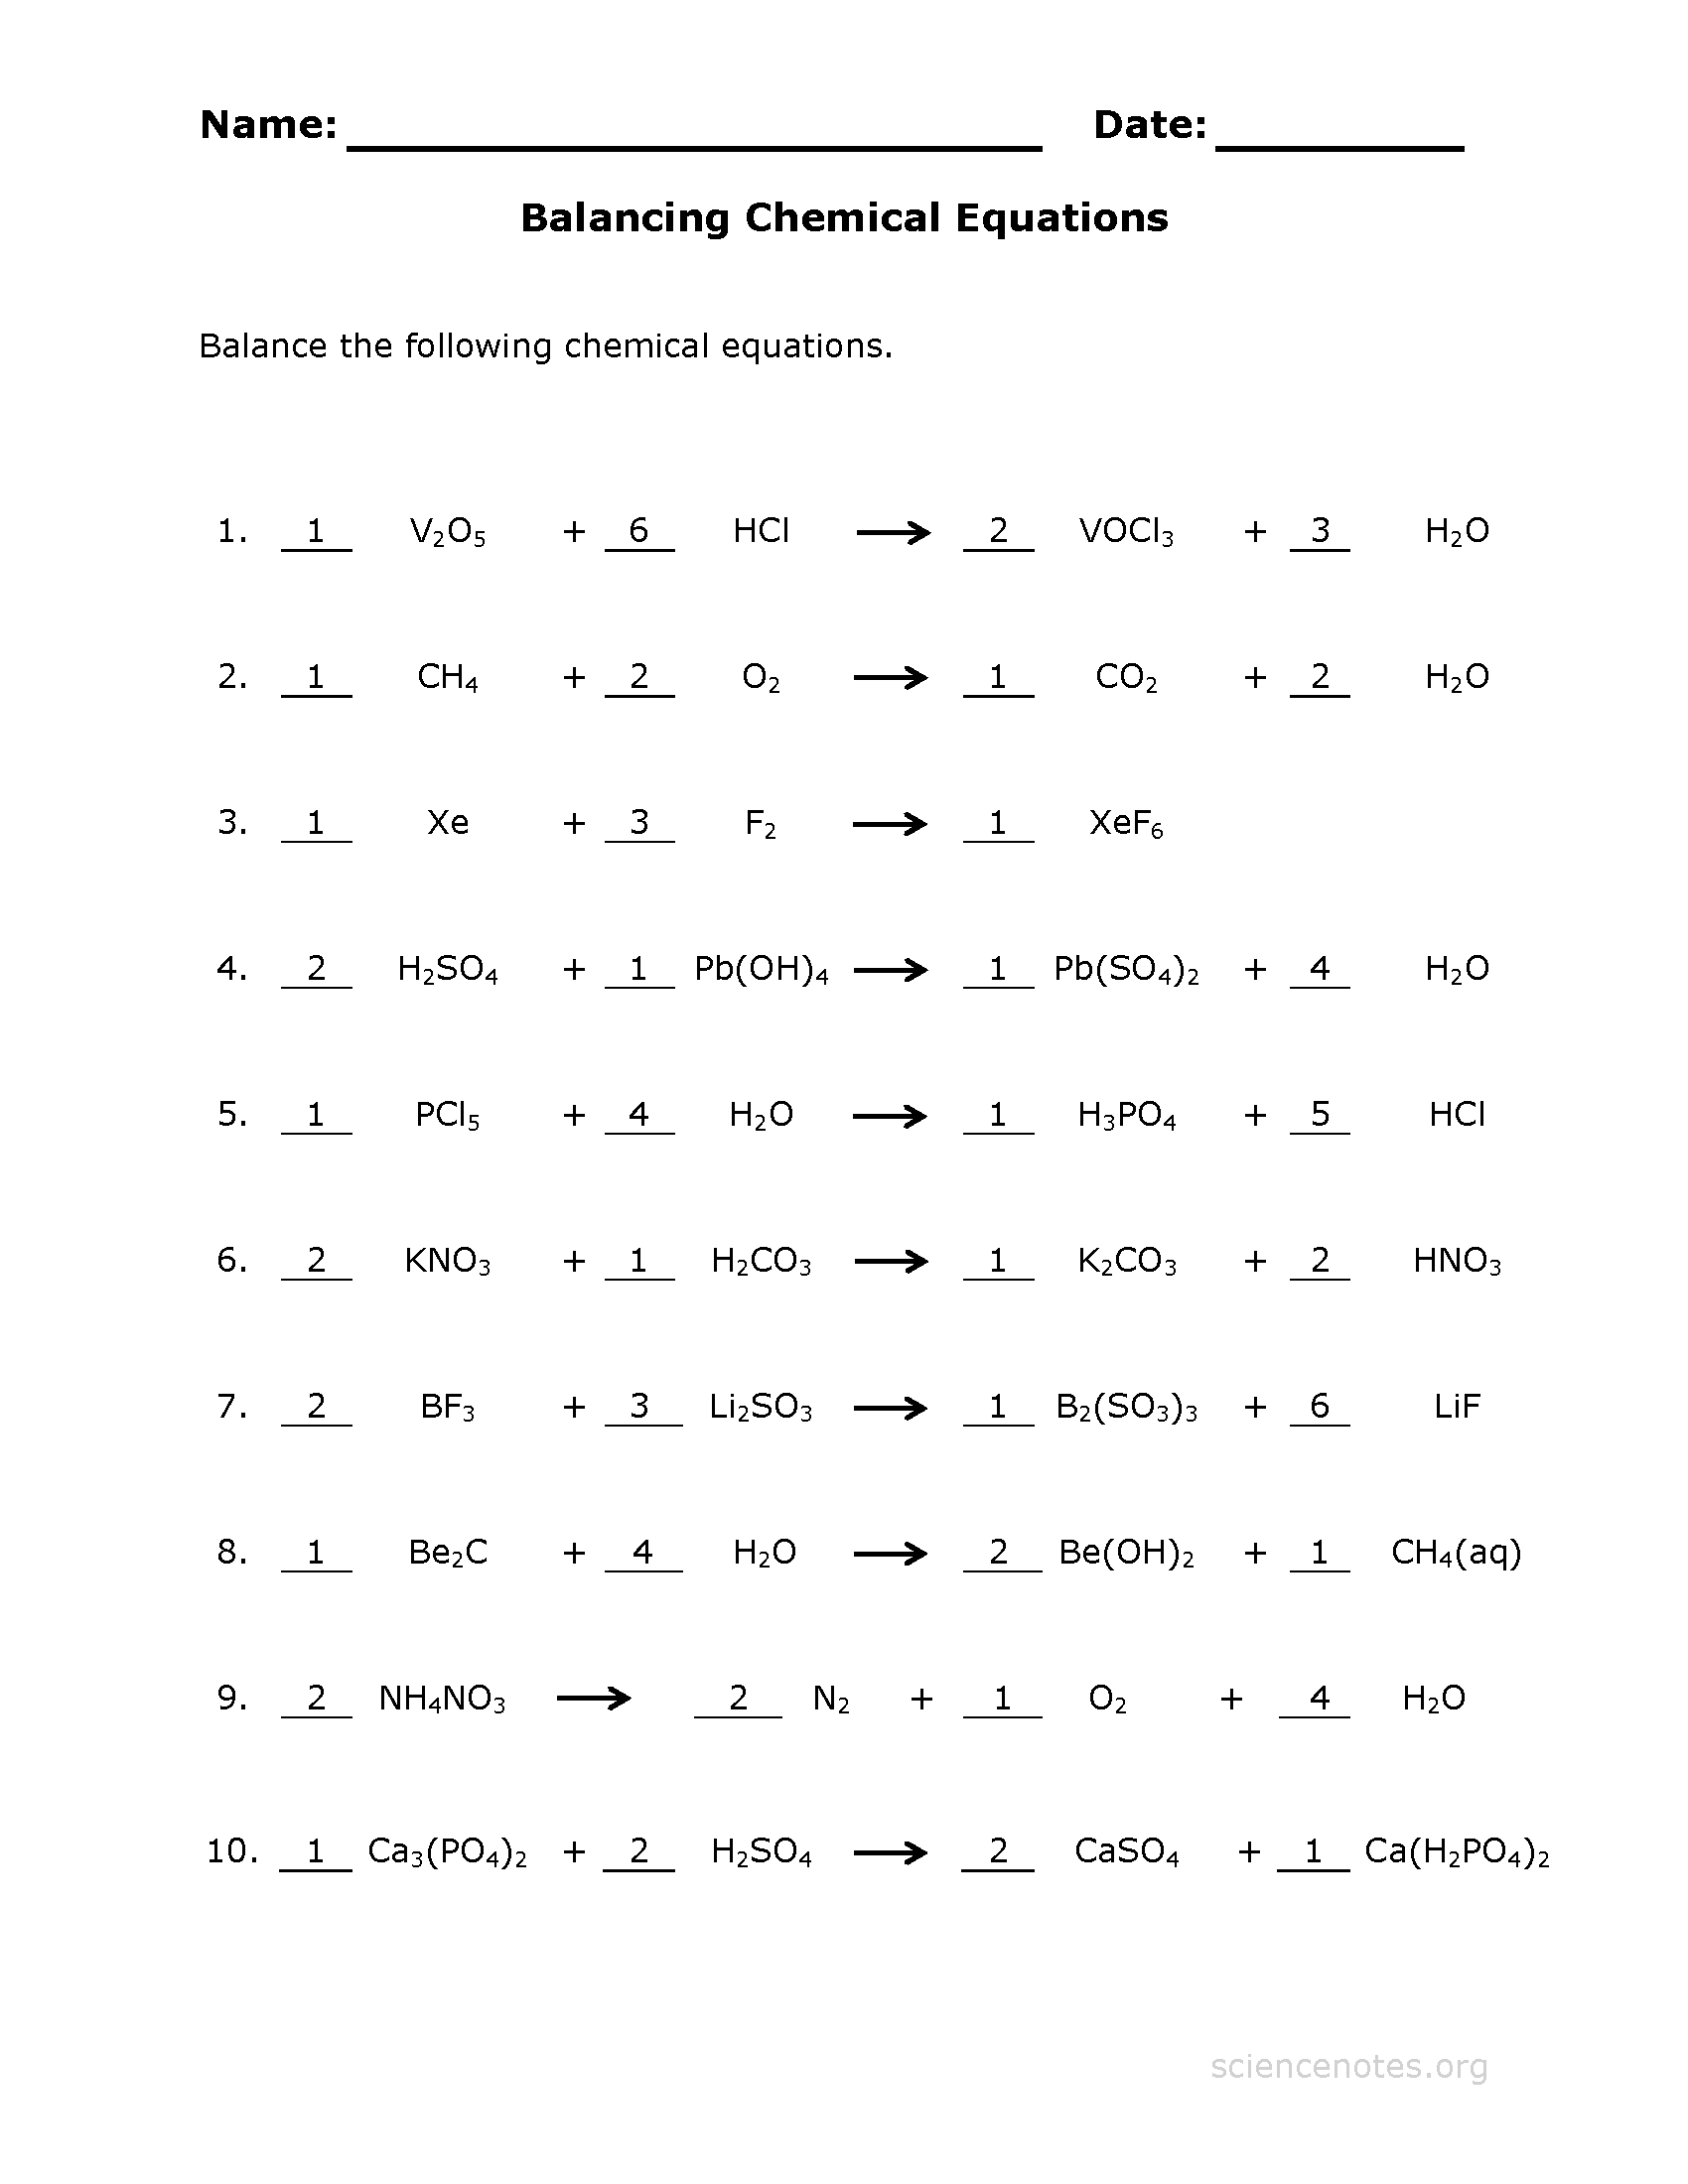 Balancing Chemical Equations Worksheet 3 Answers Sharebrowse – Balancing Chemical Equation Worksheet Answers